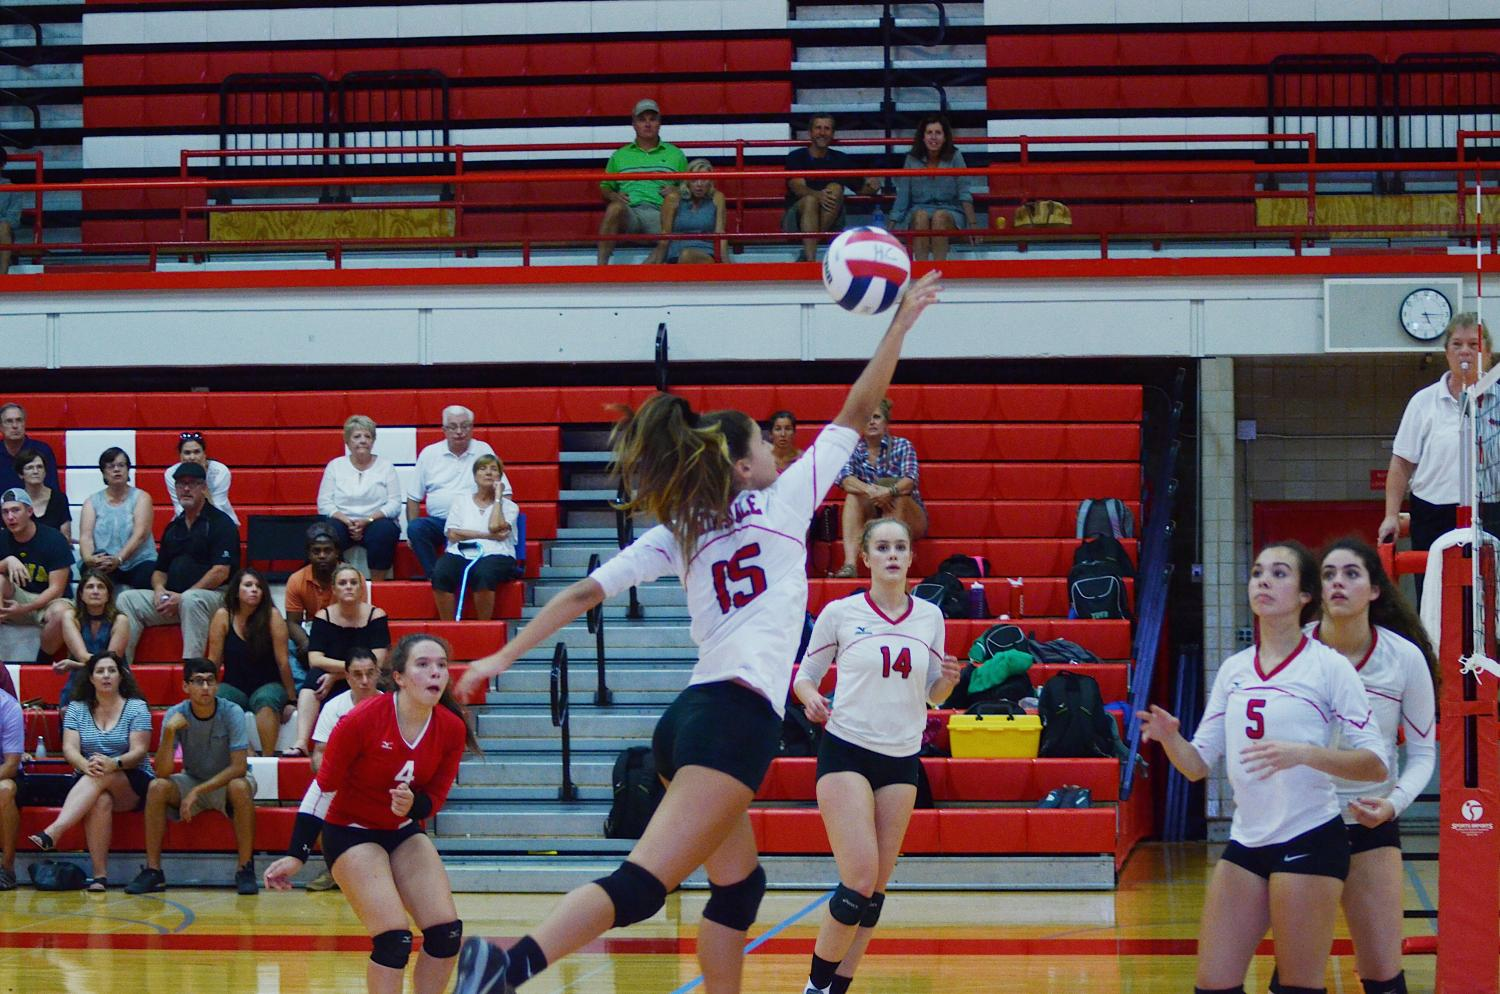 The girls volleyball teams played their first home game Tuesday night, Sept. 26.